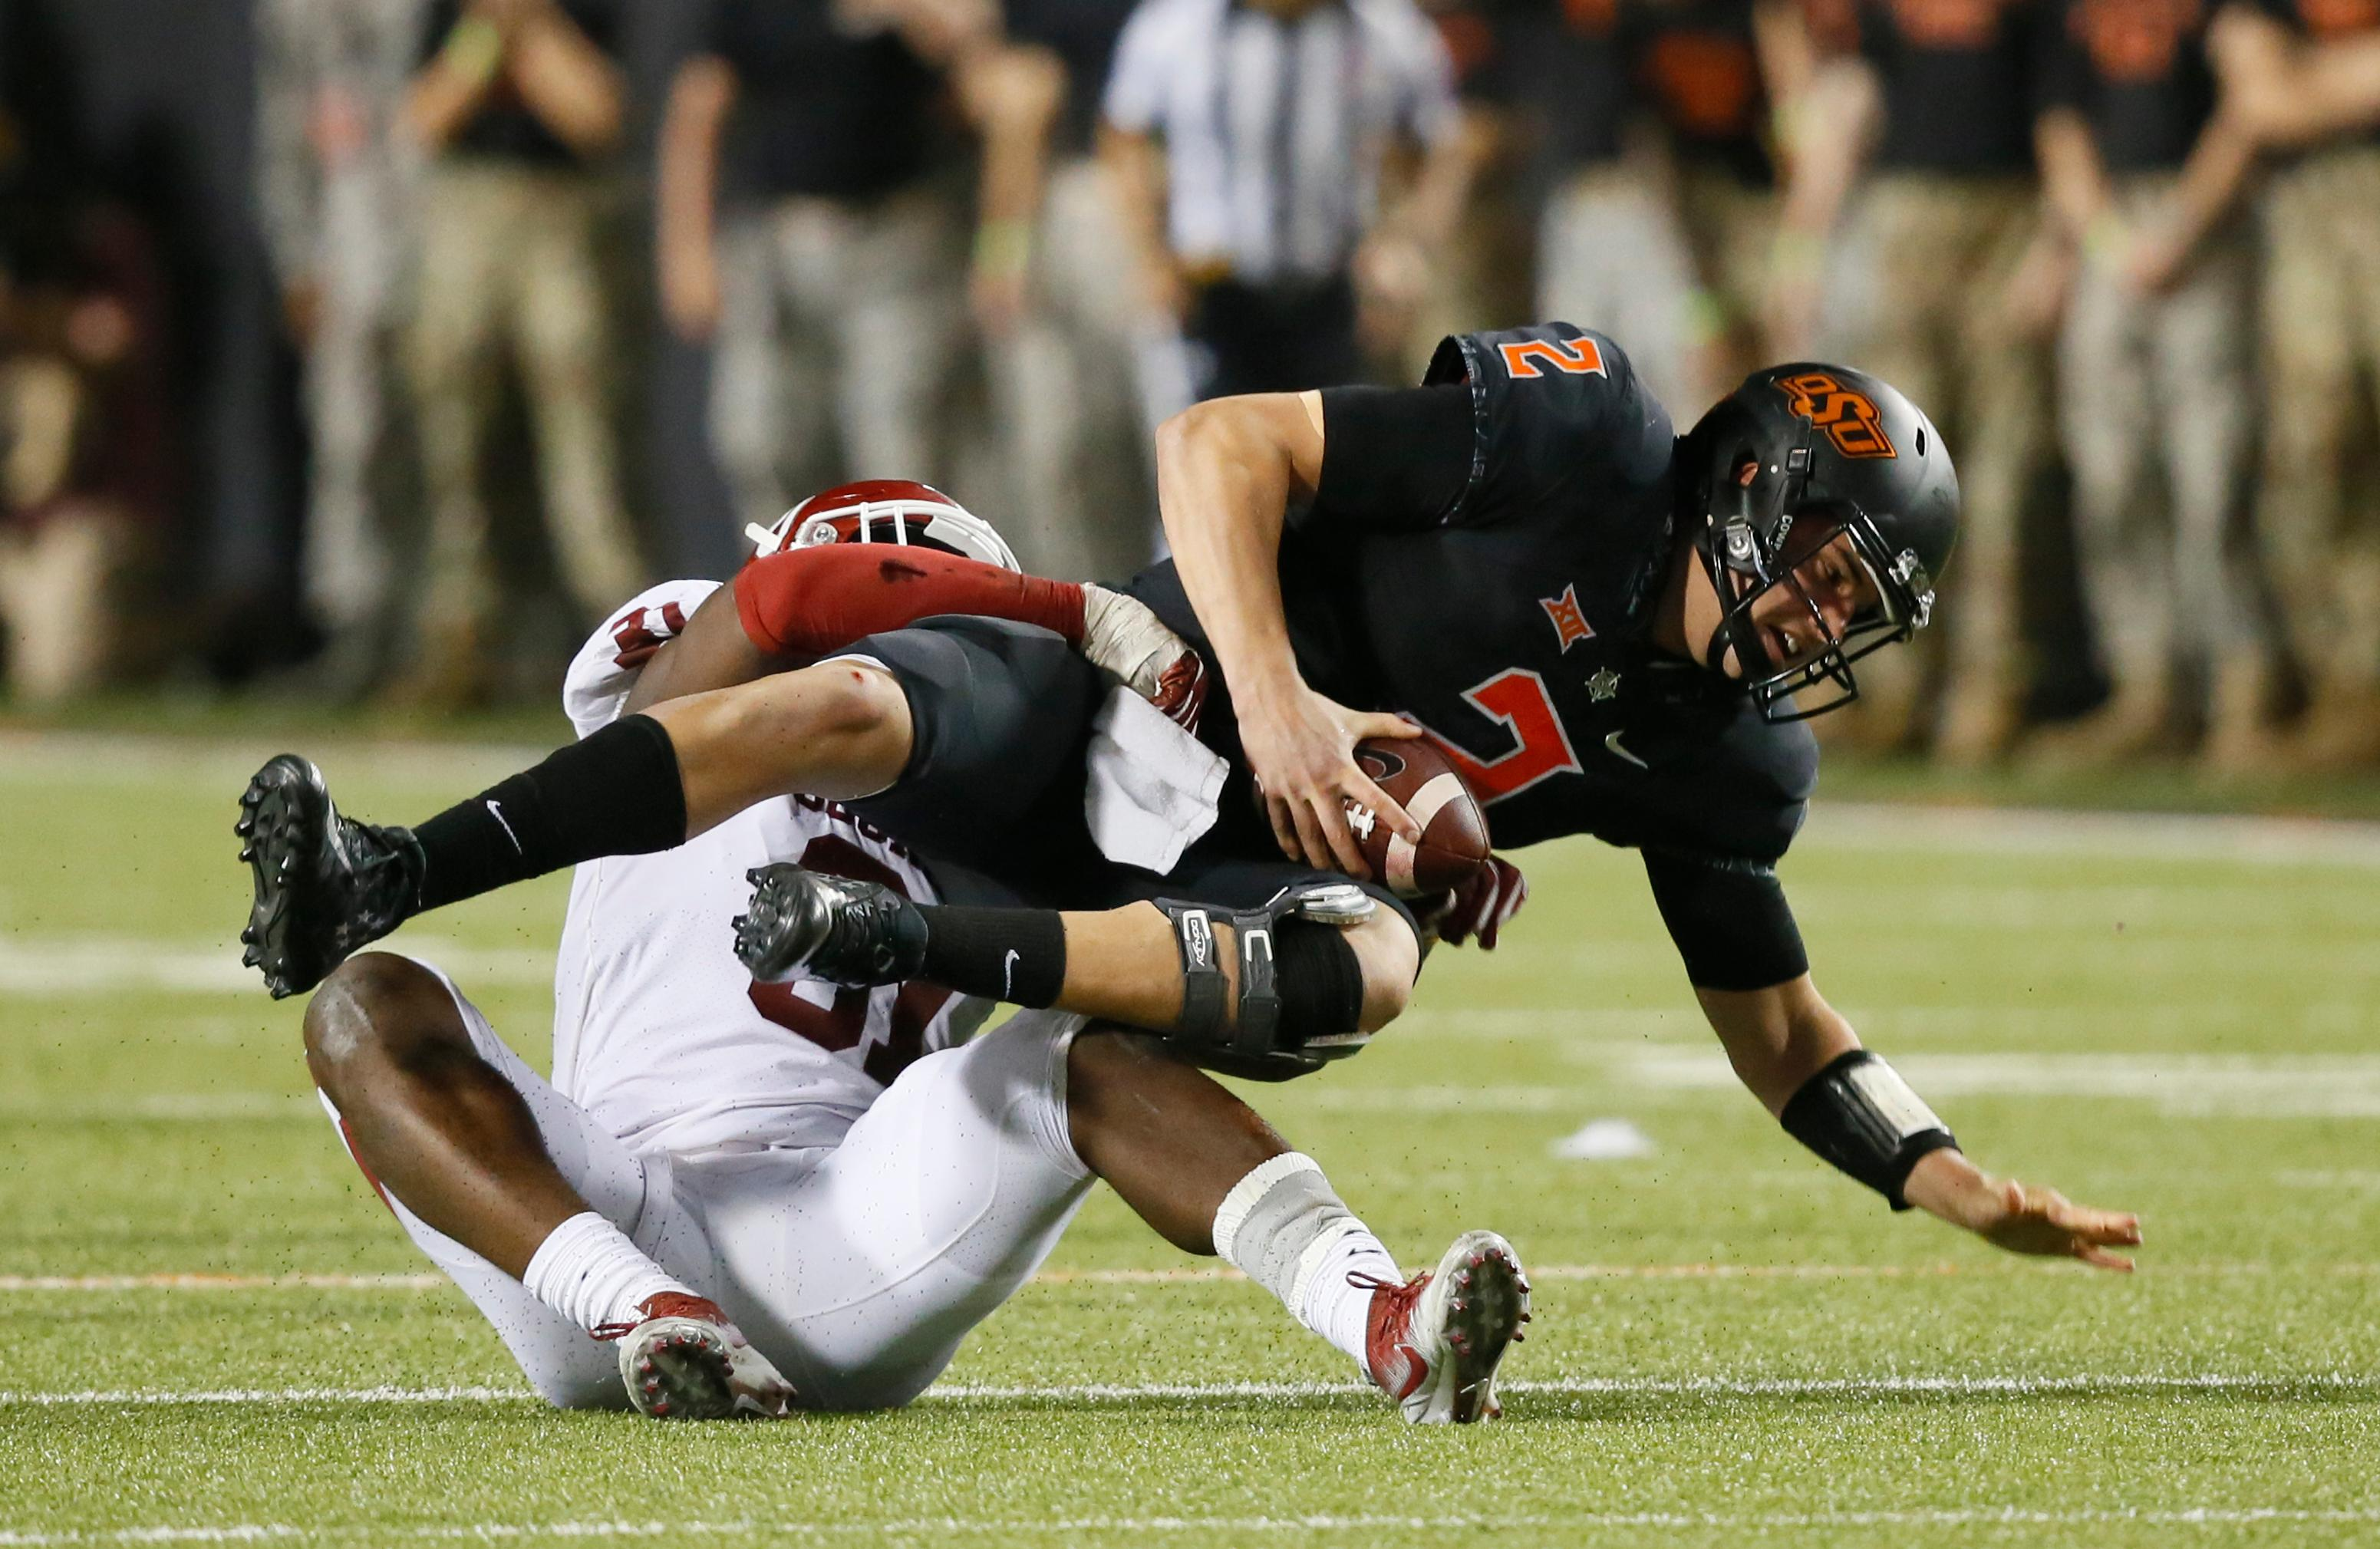 Oklahoma State quarterback Mason Rudolph (2) is sacked by Oklahoma defensive end Ogbonnia Okoronkwo, left, in the second half of an NCAA college football game in Stillwater, Okla., Saturday, Nov. 4, 2017. Oklahoma won 62-52. (AP Photo/Sue Ogrocki)